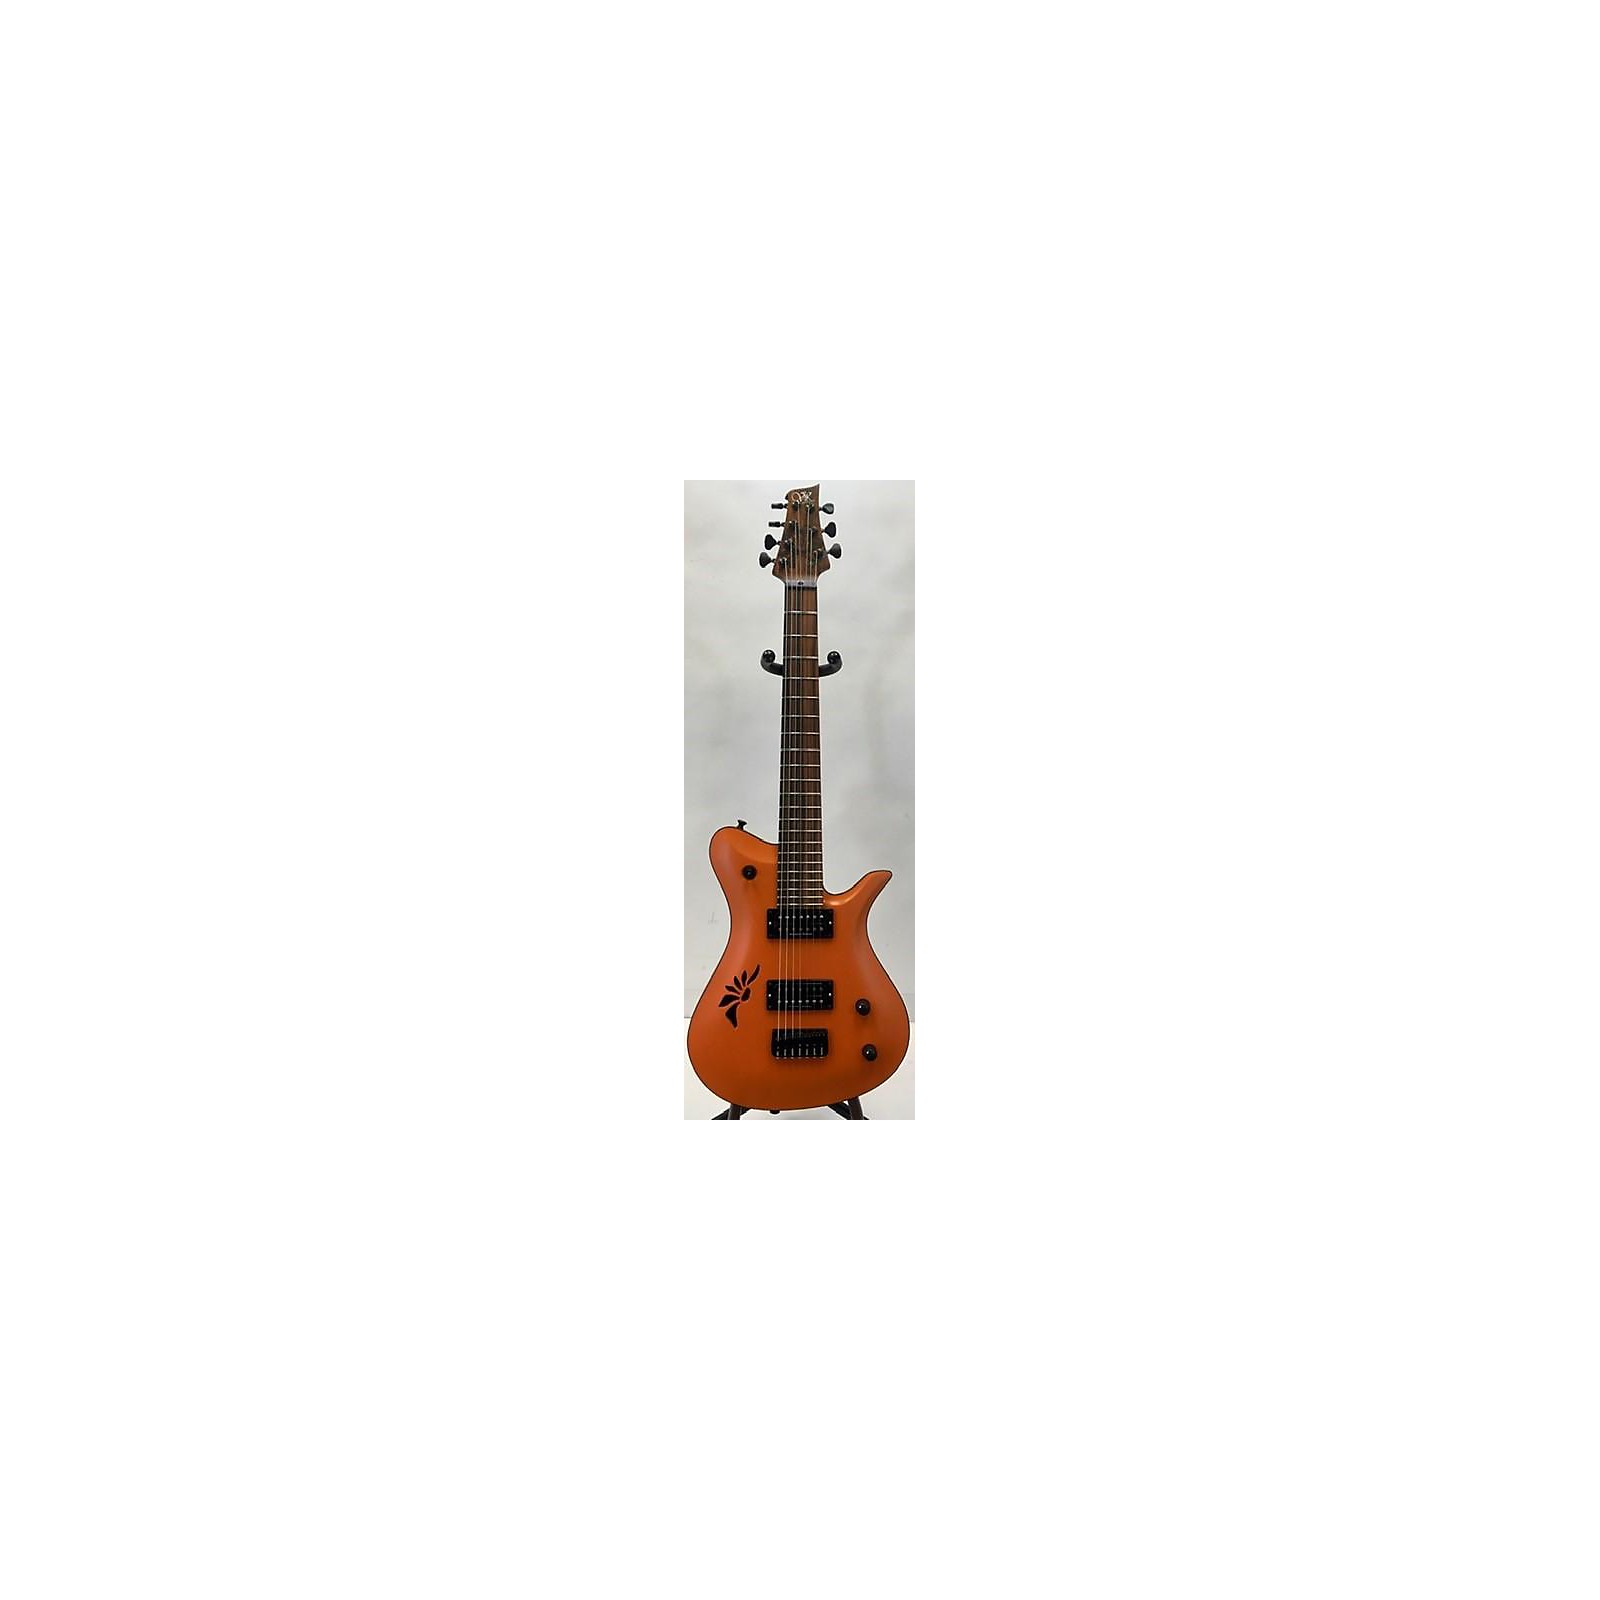 In Store Used Used Vik Guitar T7 Fire Lilly Orange Solid Body Electric Guitar